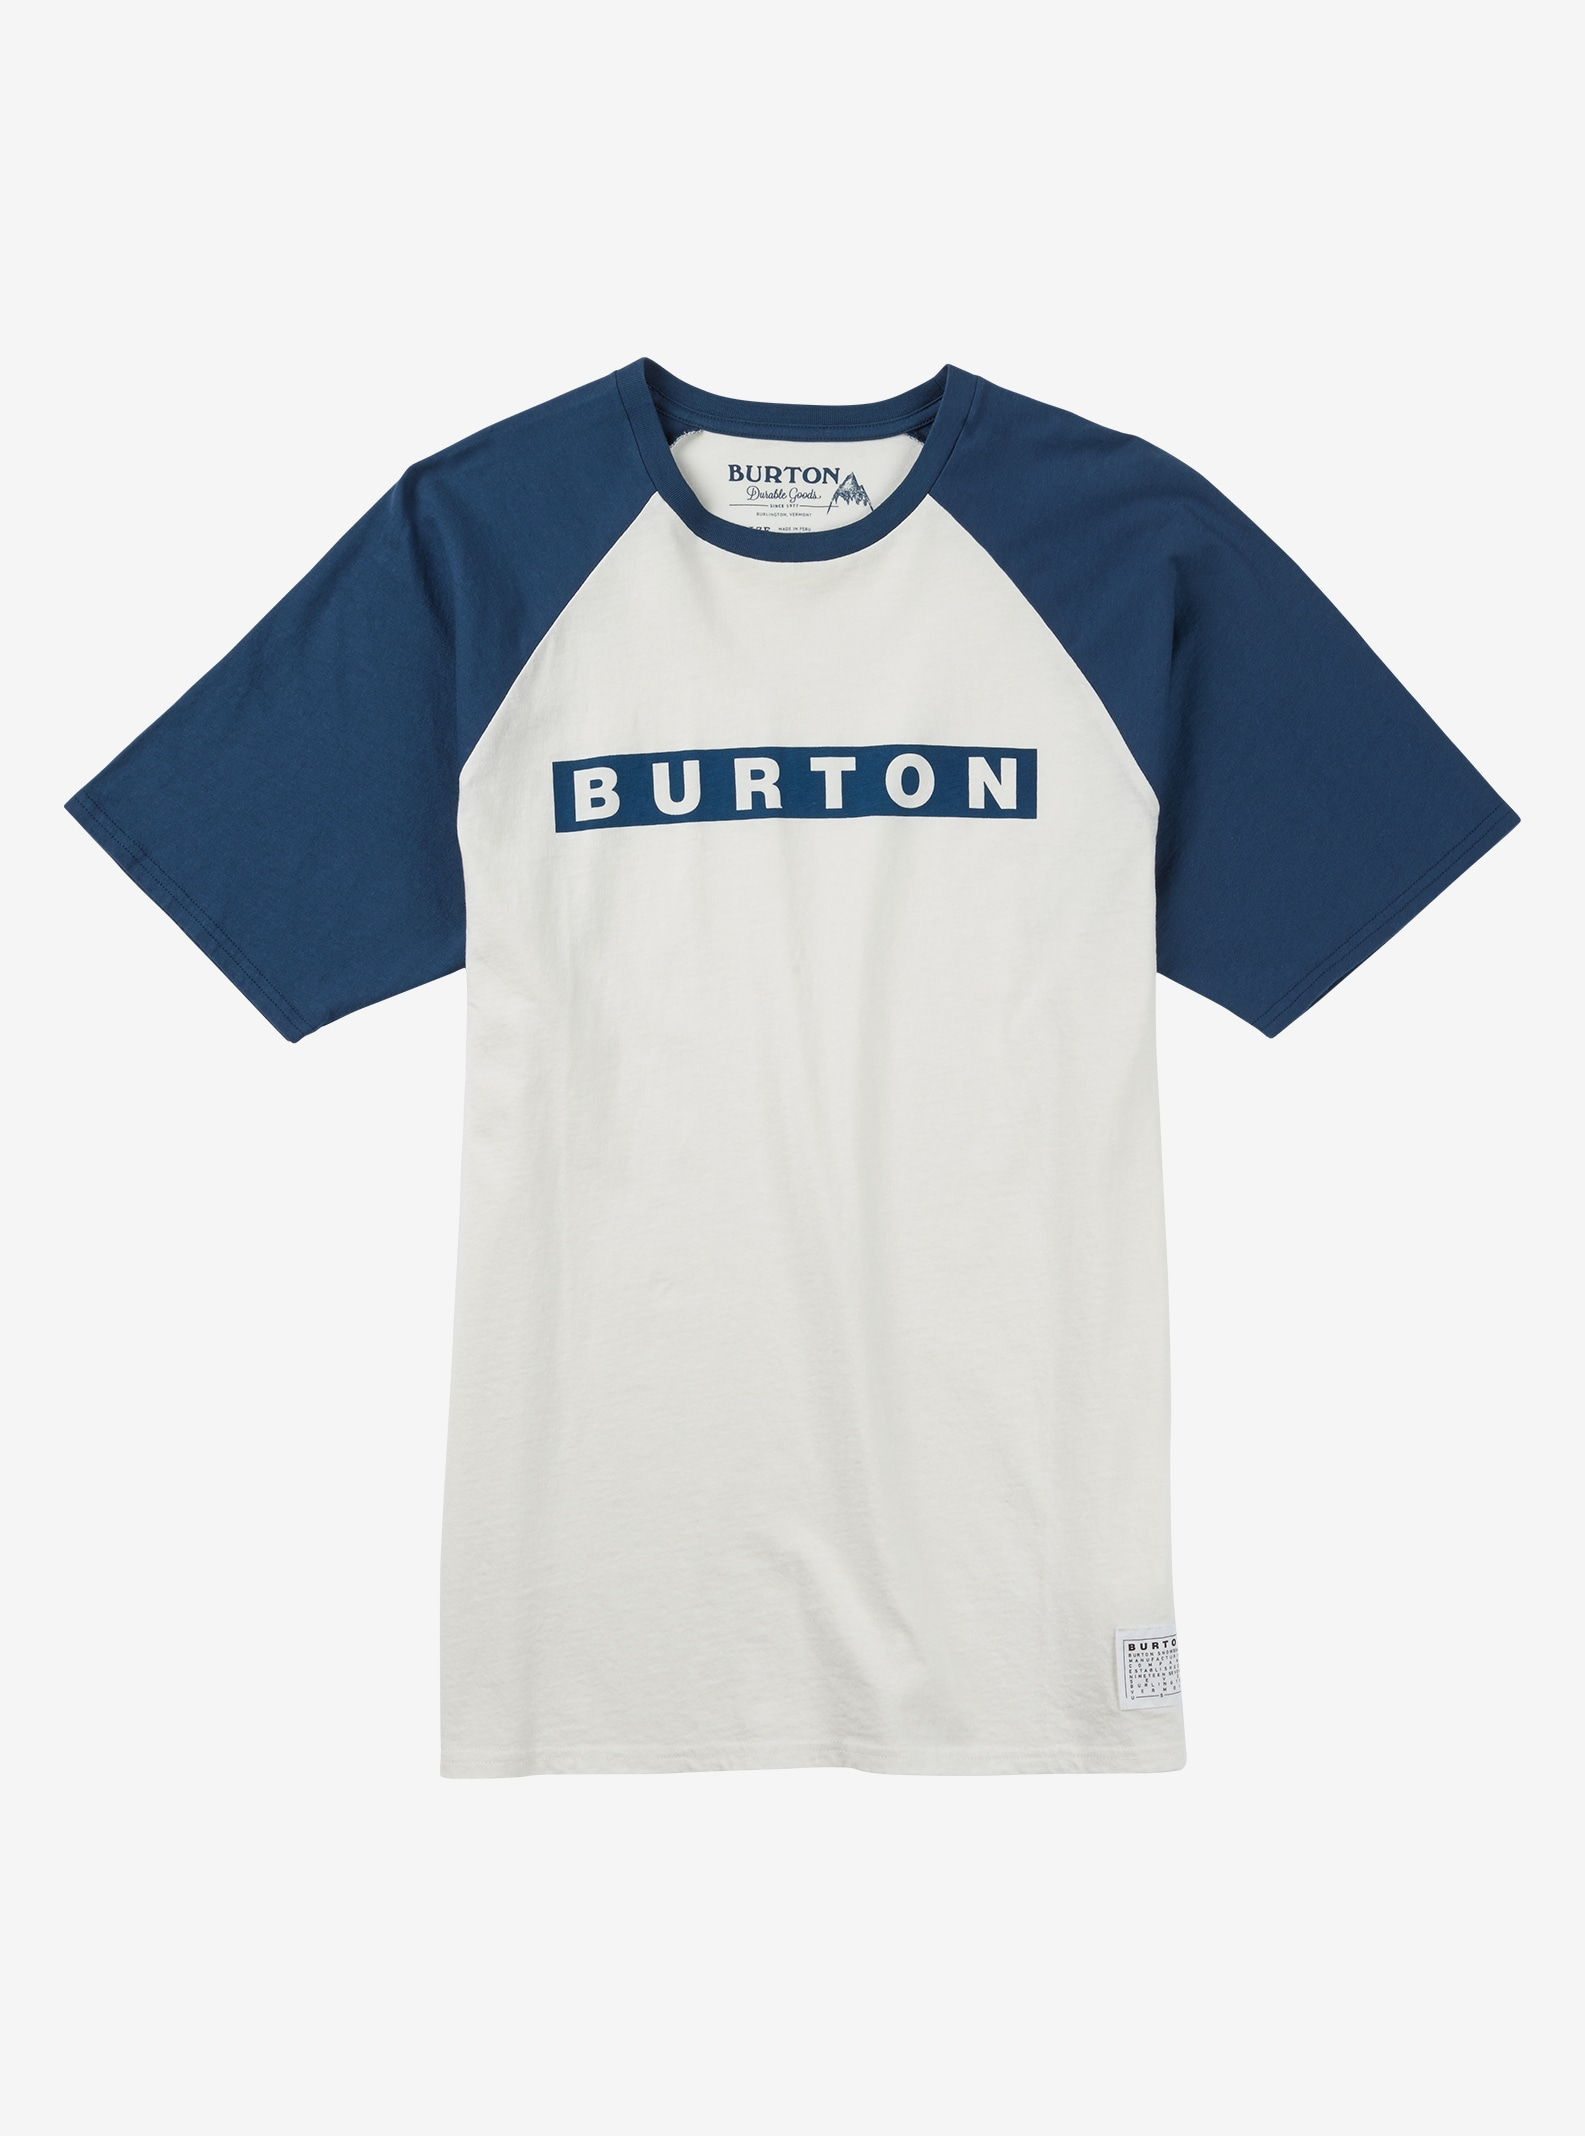 Burton Vault Short Sleeve T Shirt shown in Stout White